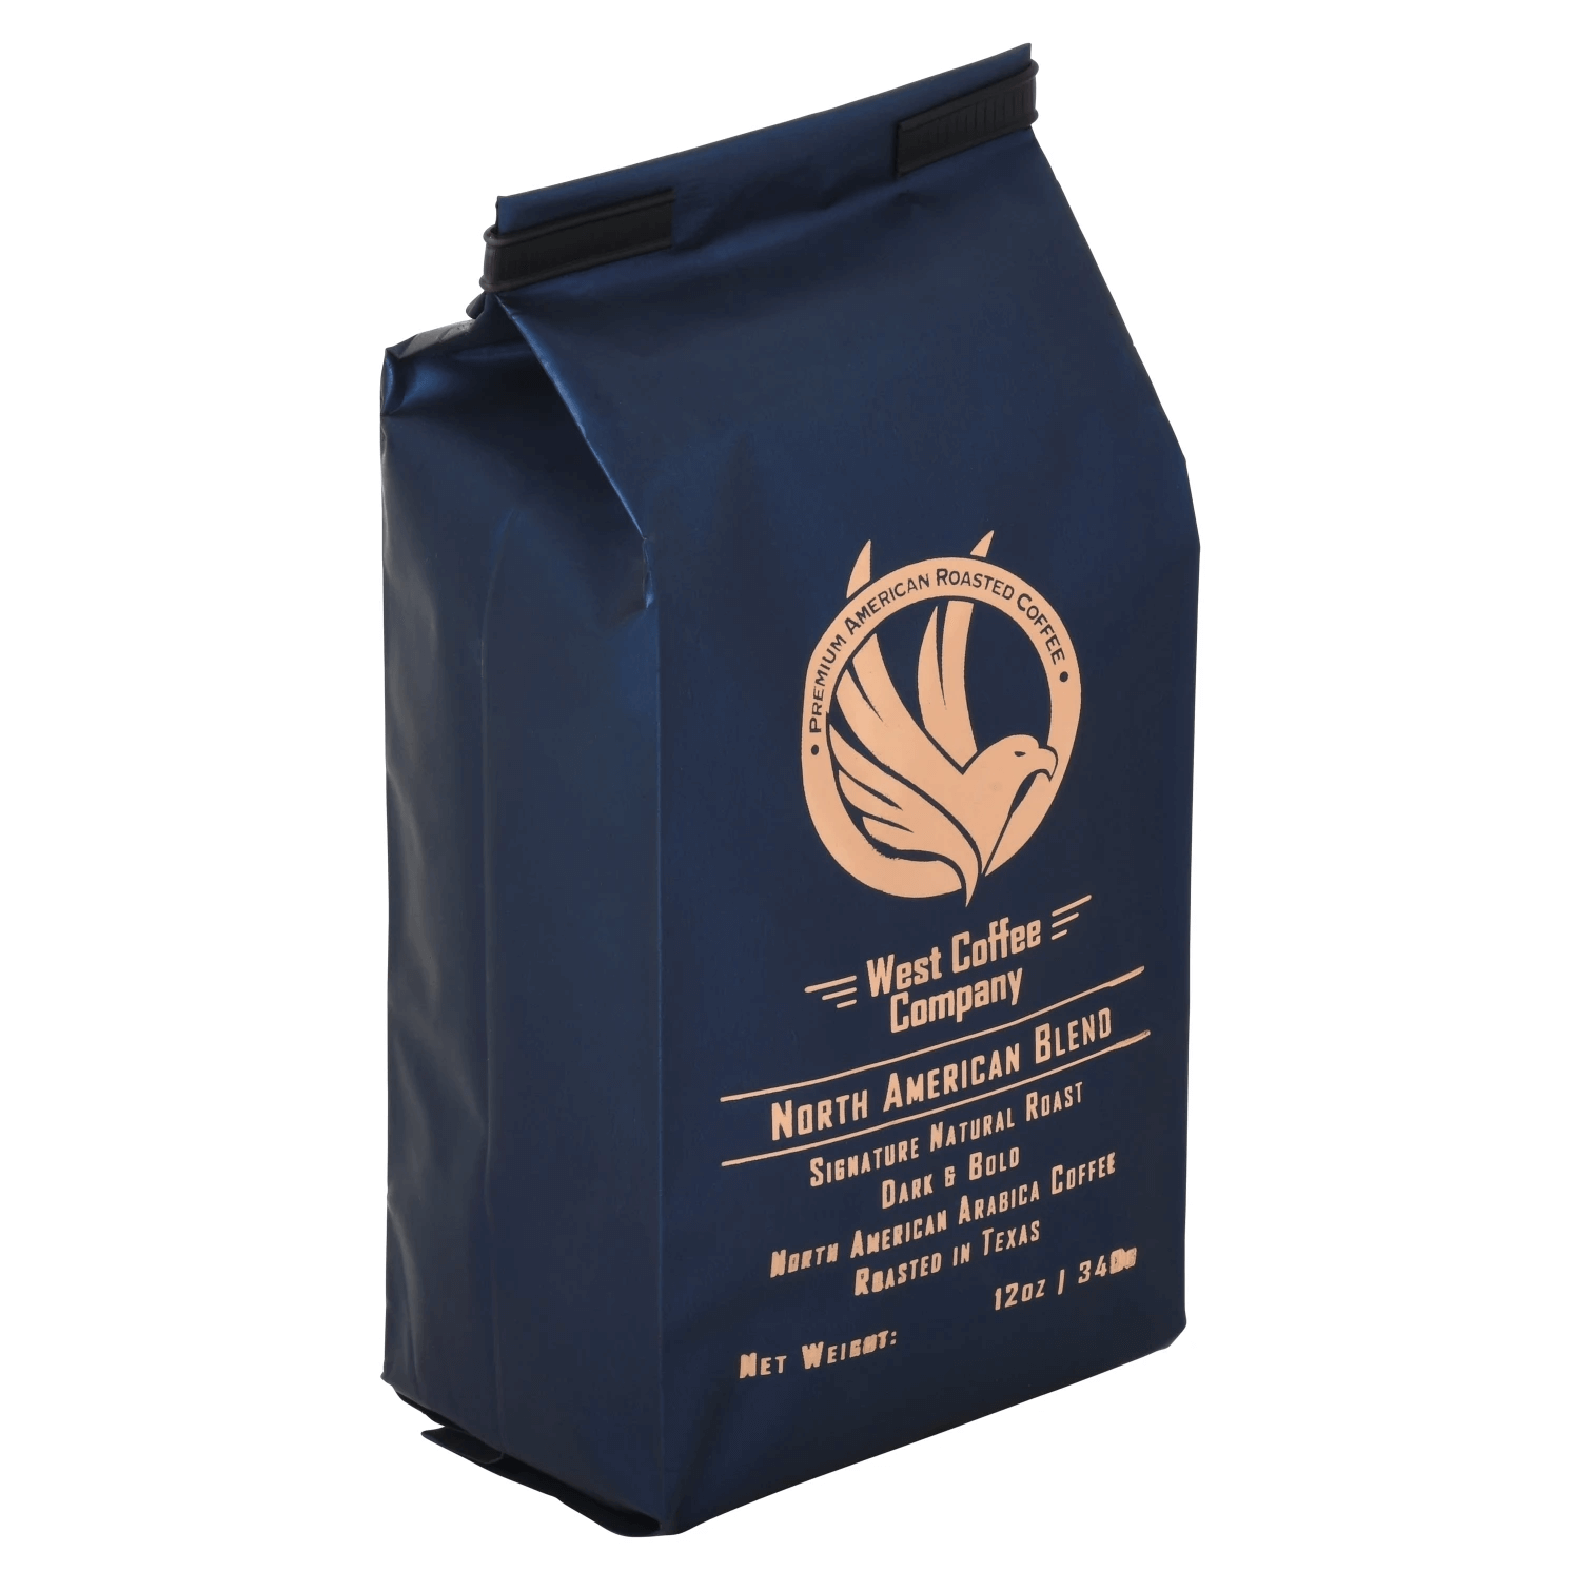 North American Blend from West Coffee Company